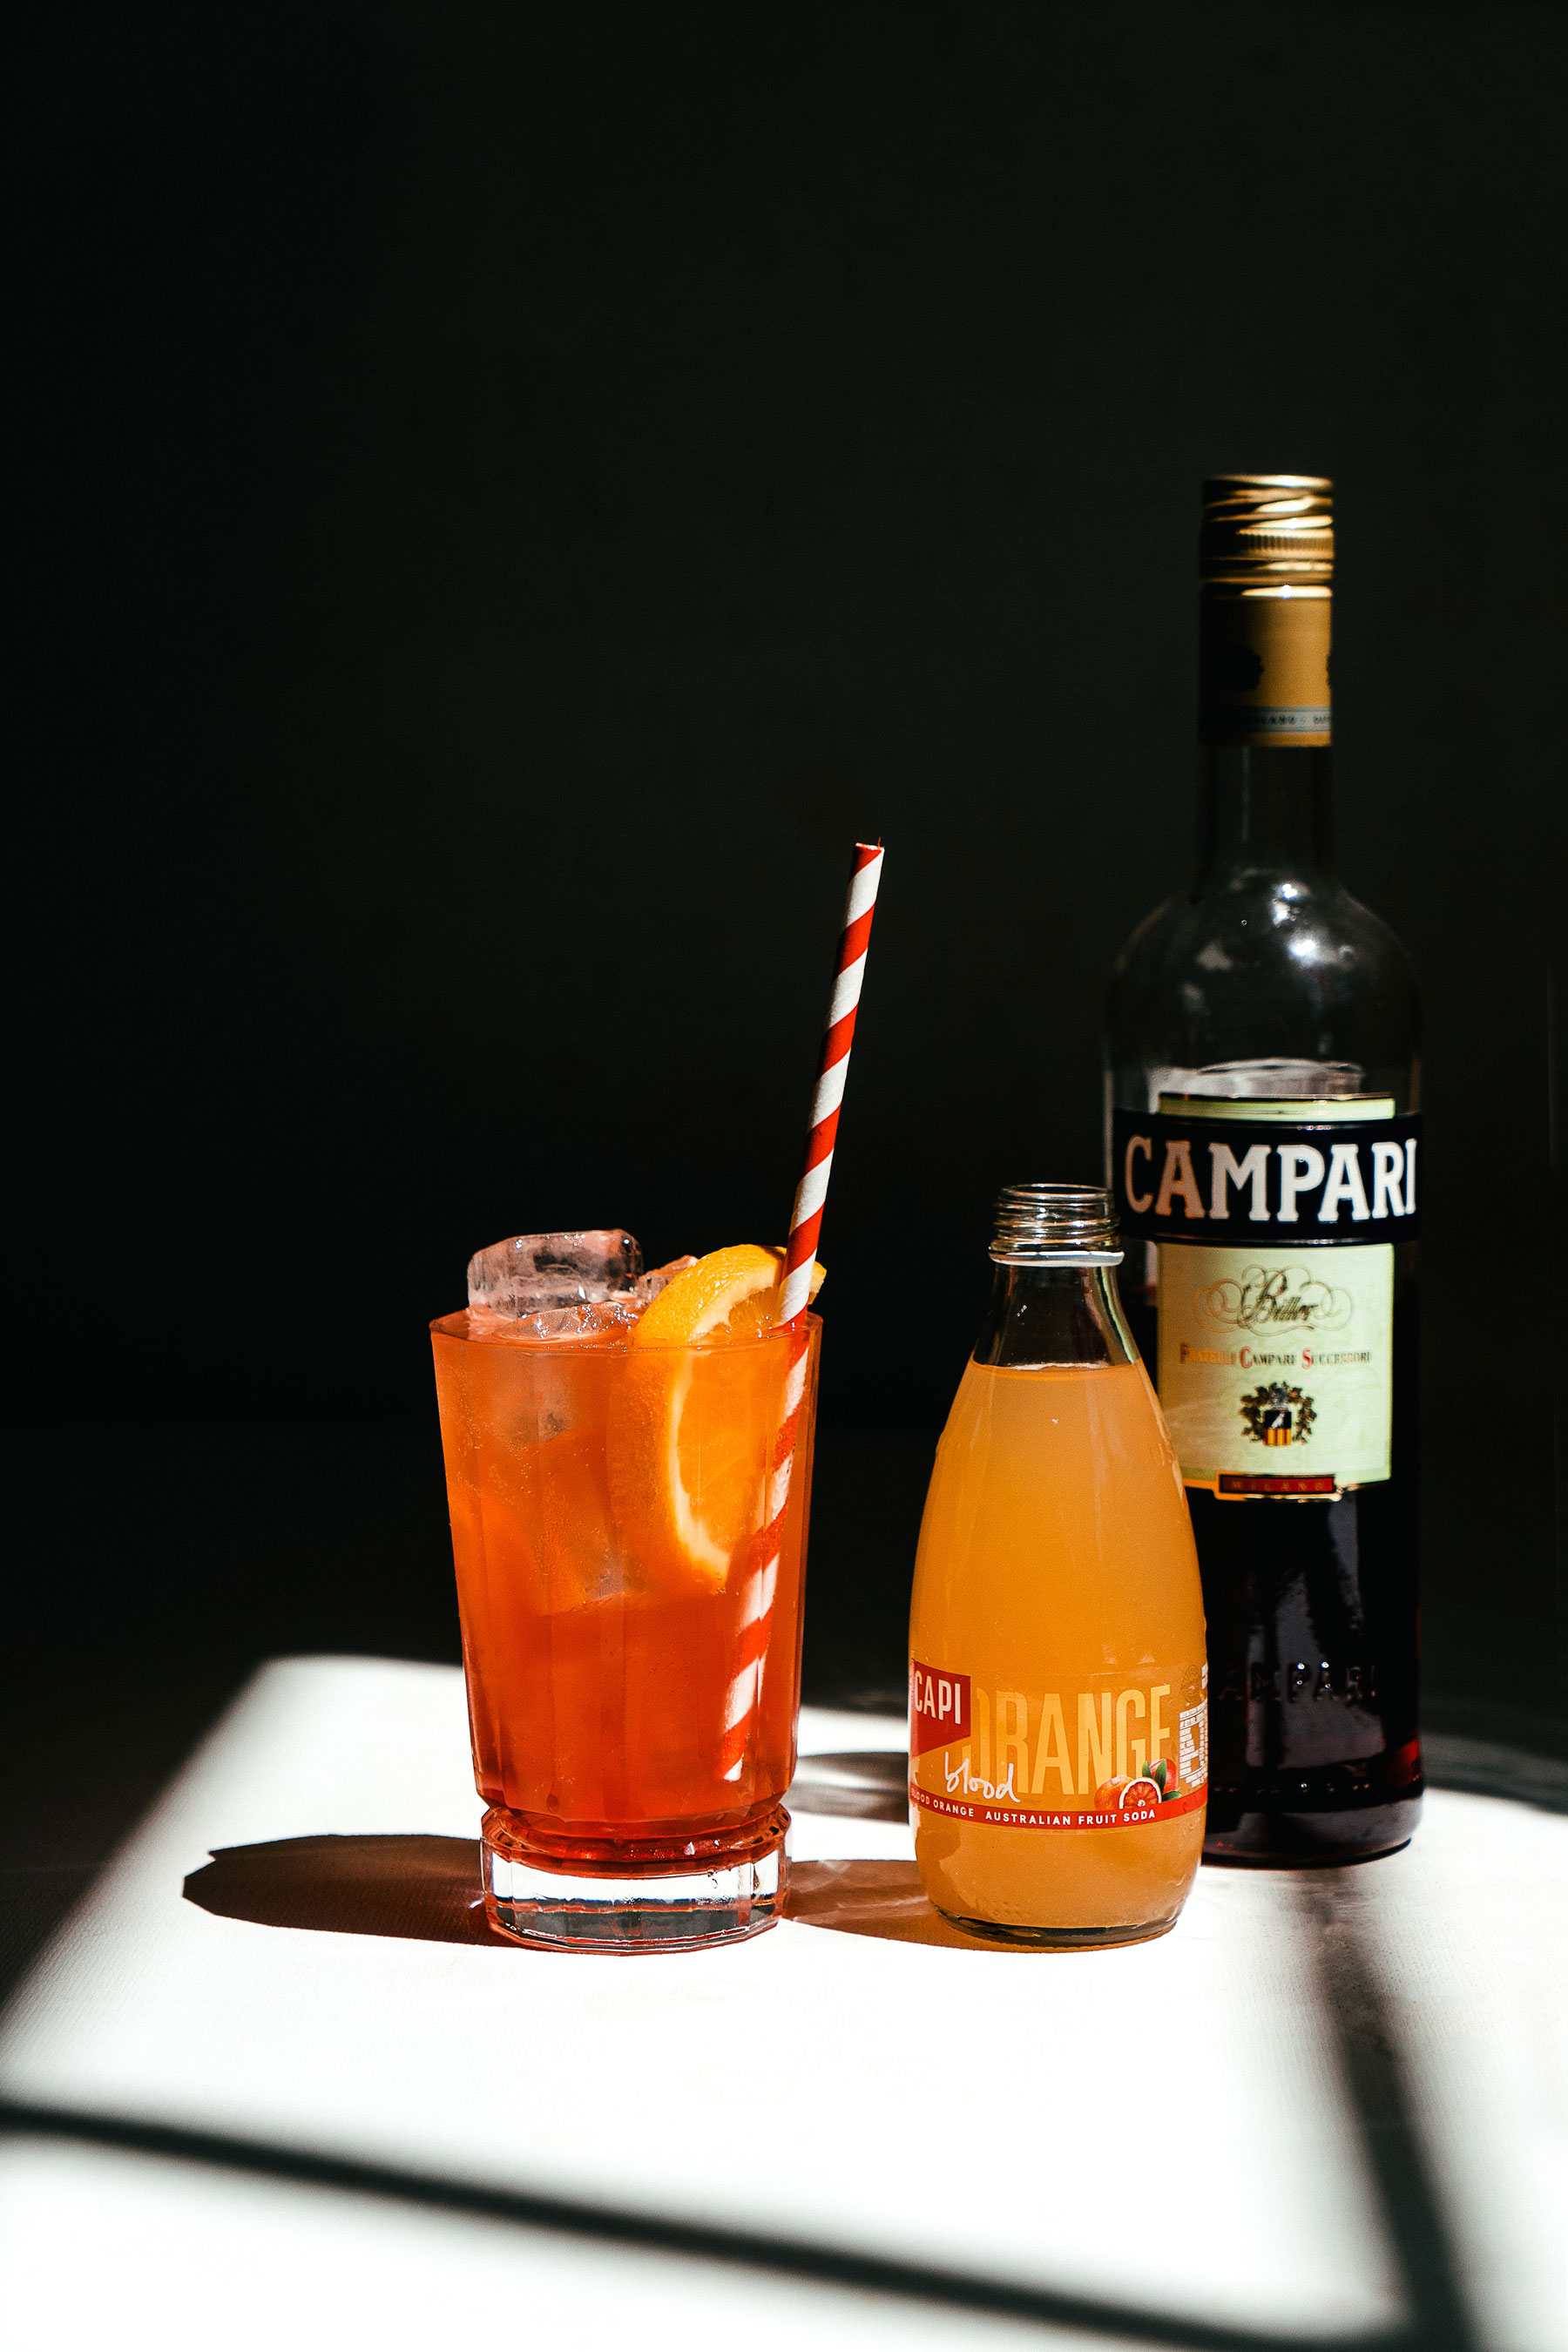 CAMPARI-BLOOD-ORANGE-4-WEB.jpg